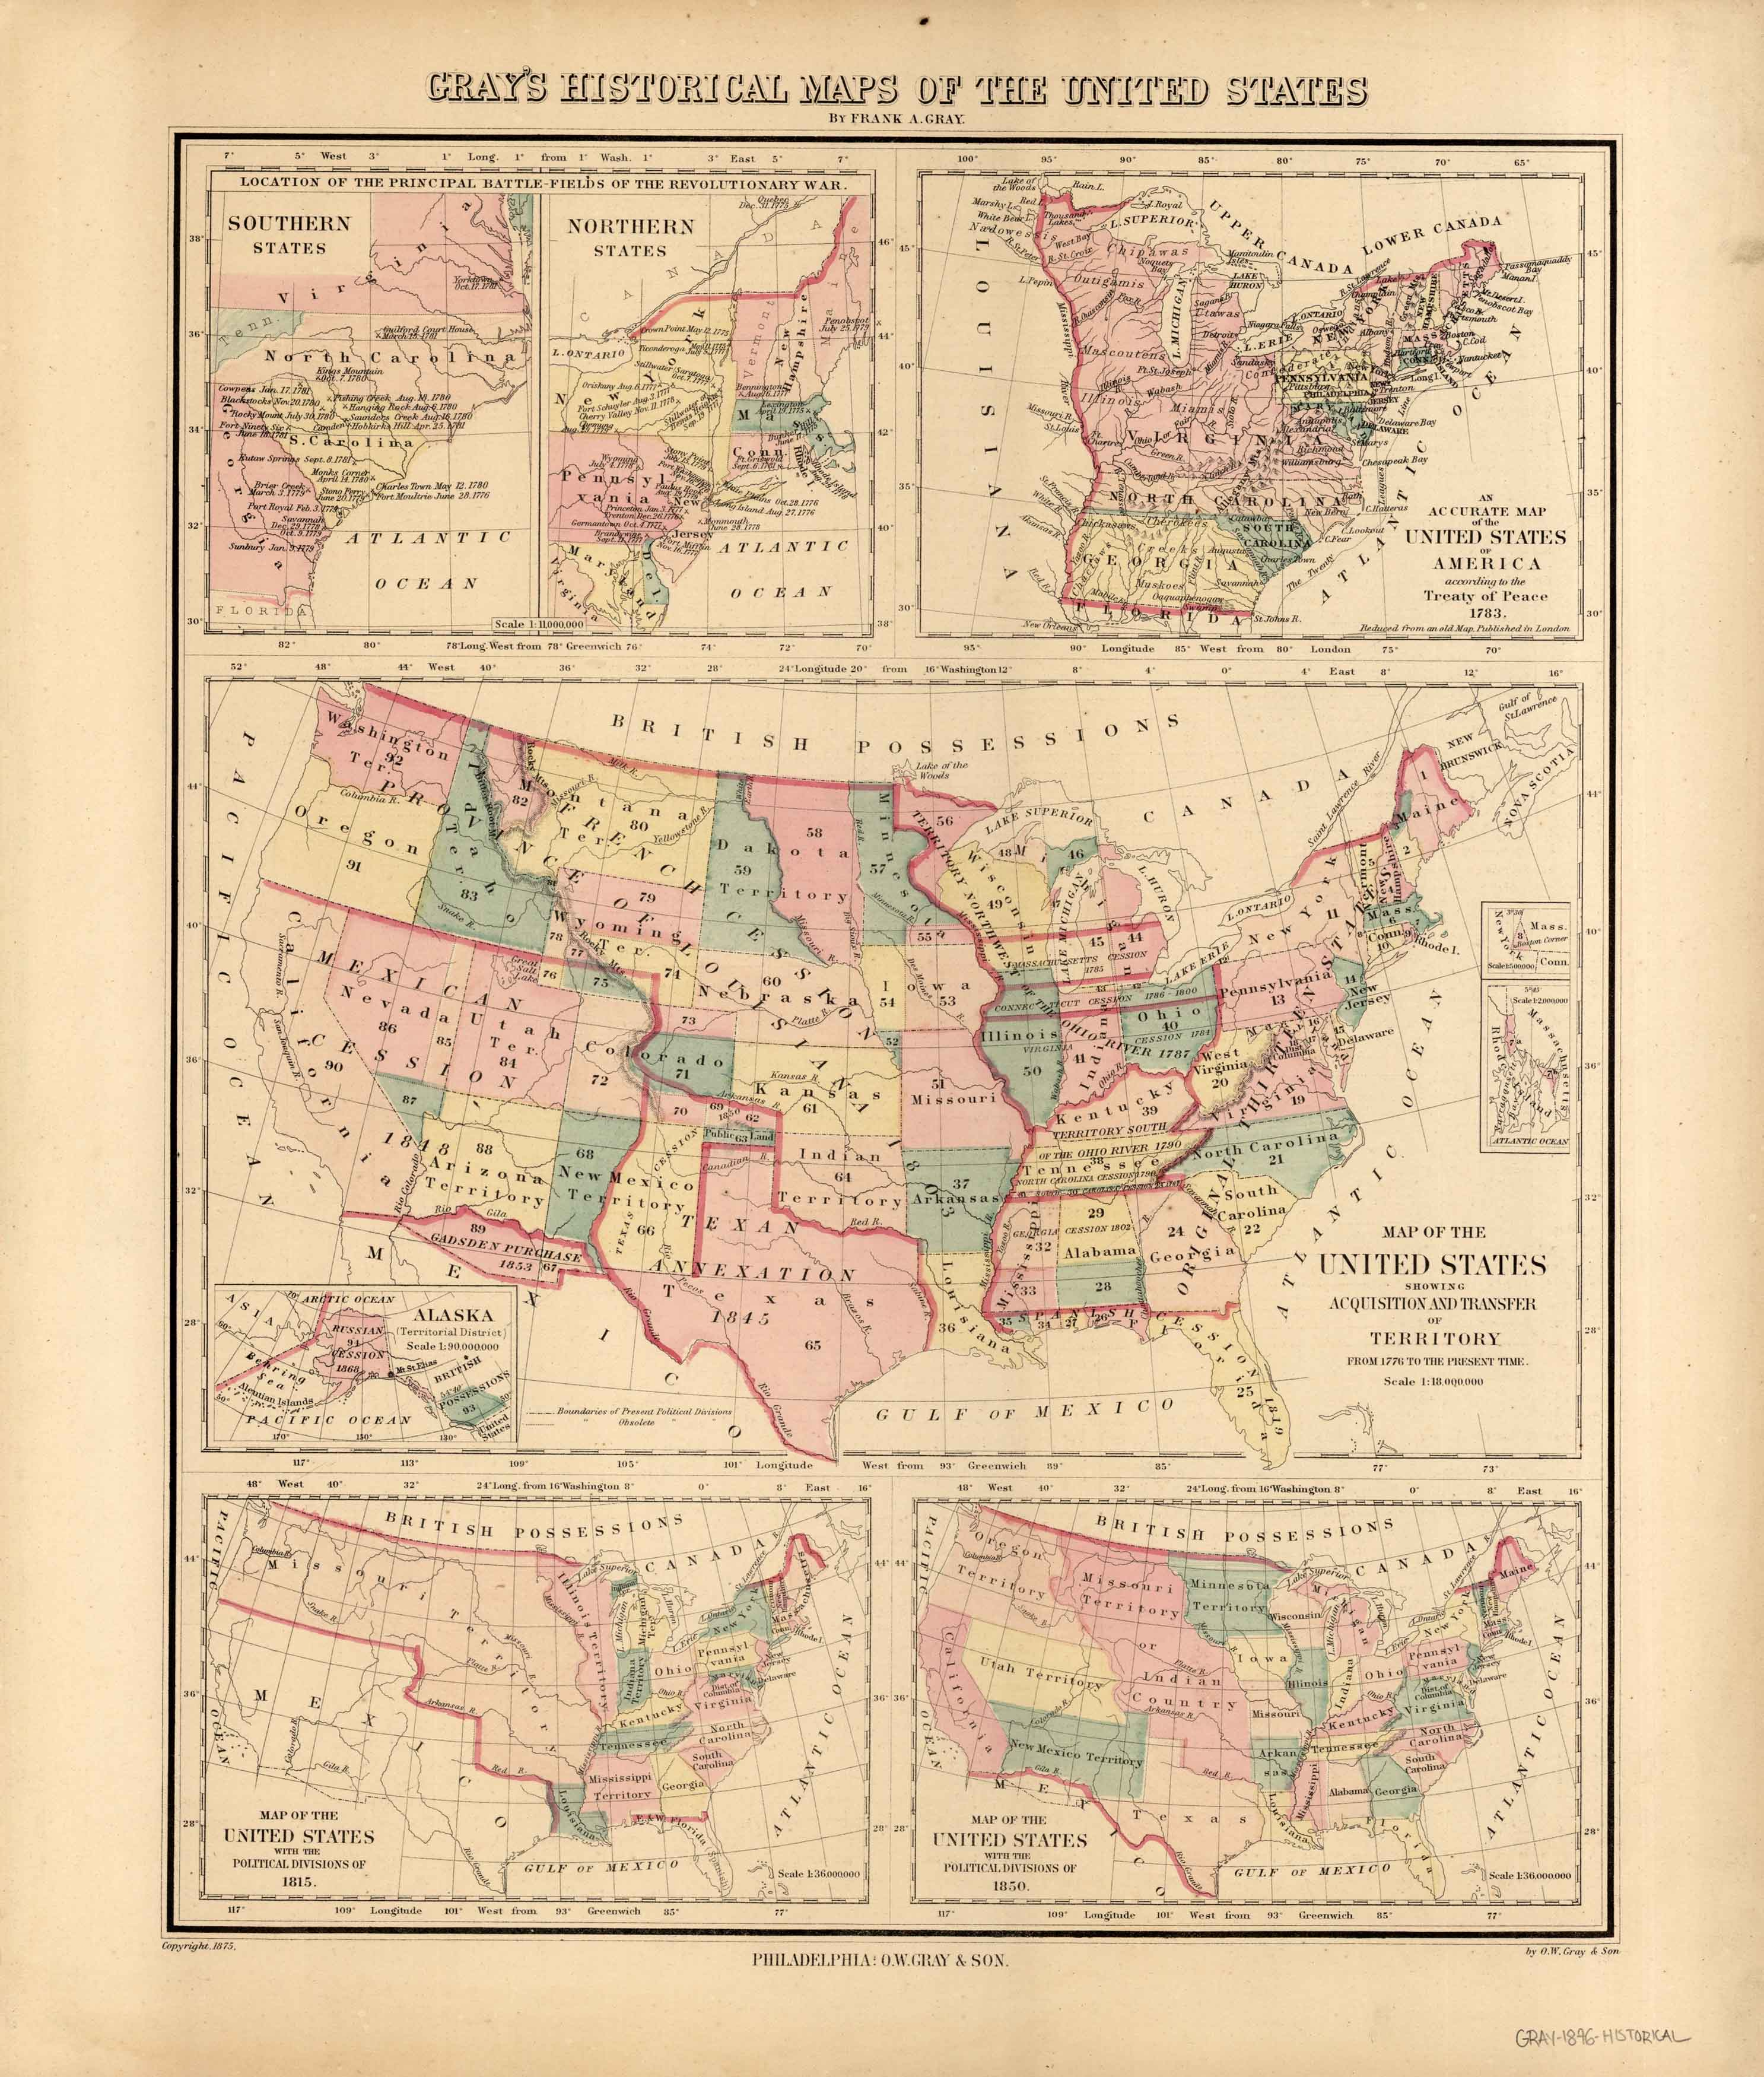 Gray\'s 1876 Historical Maps of the United States